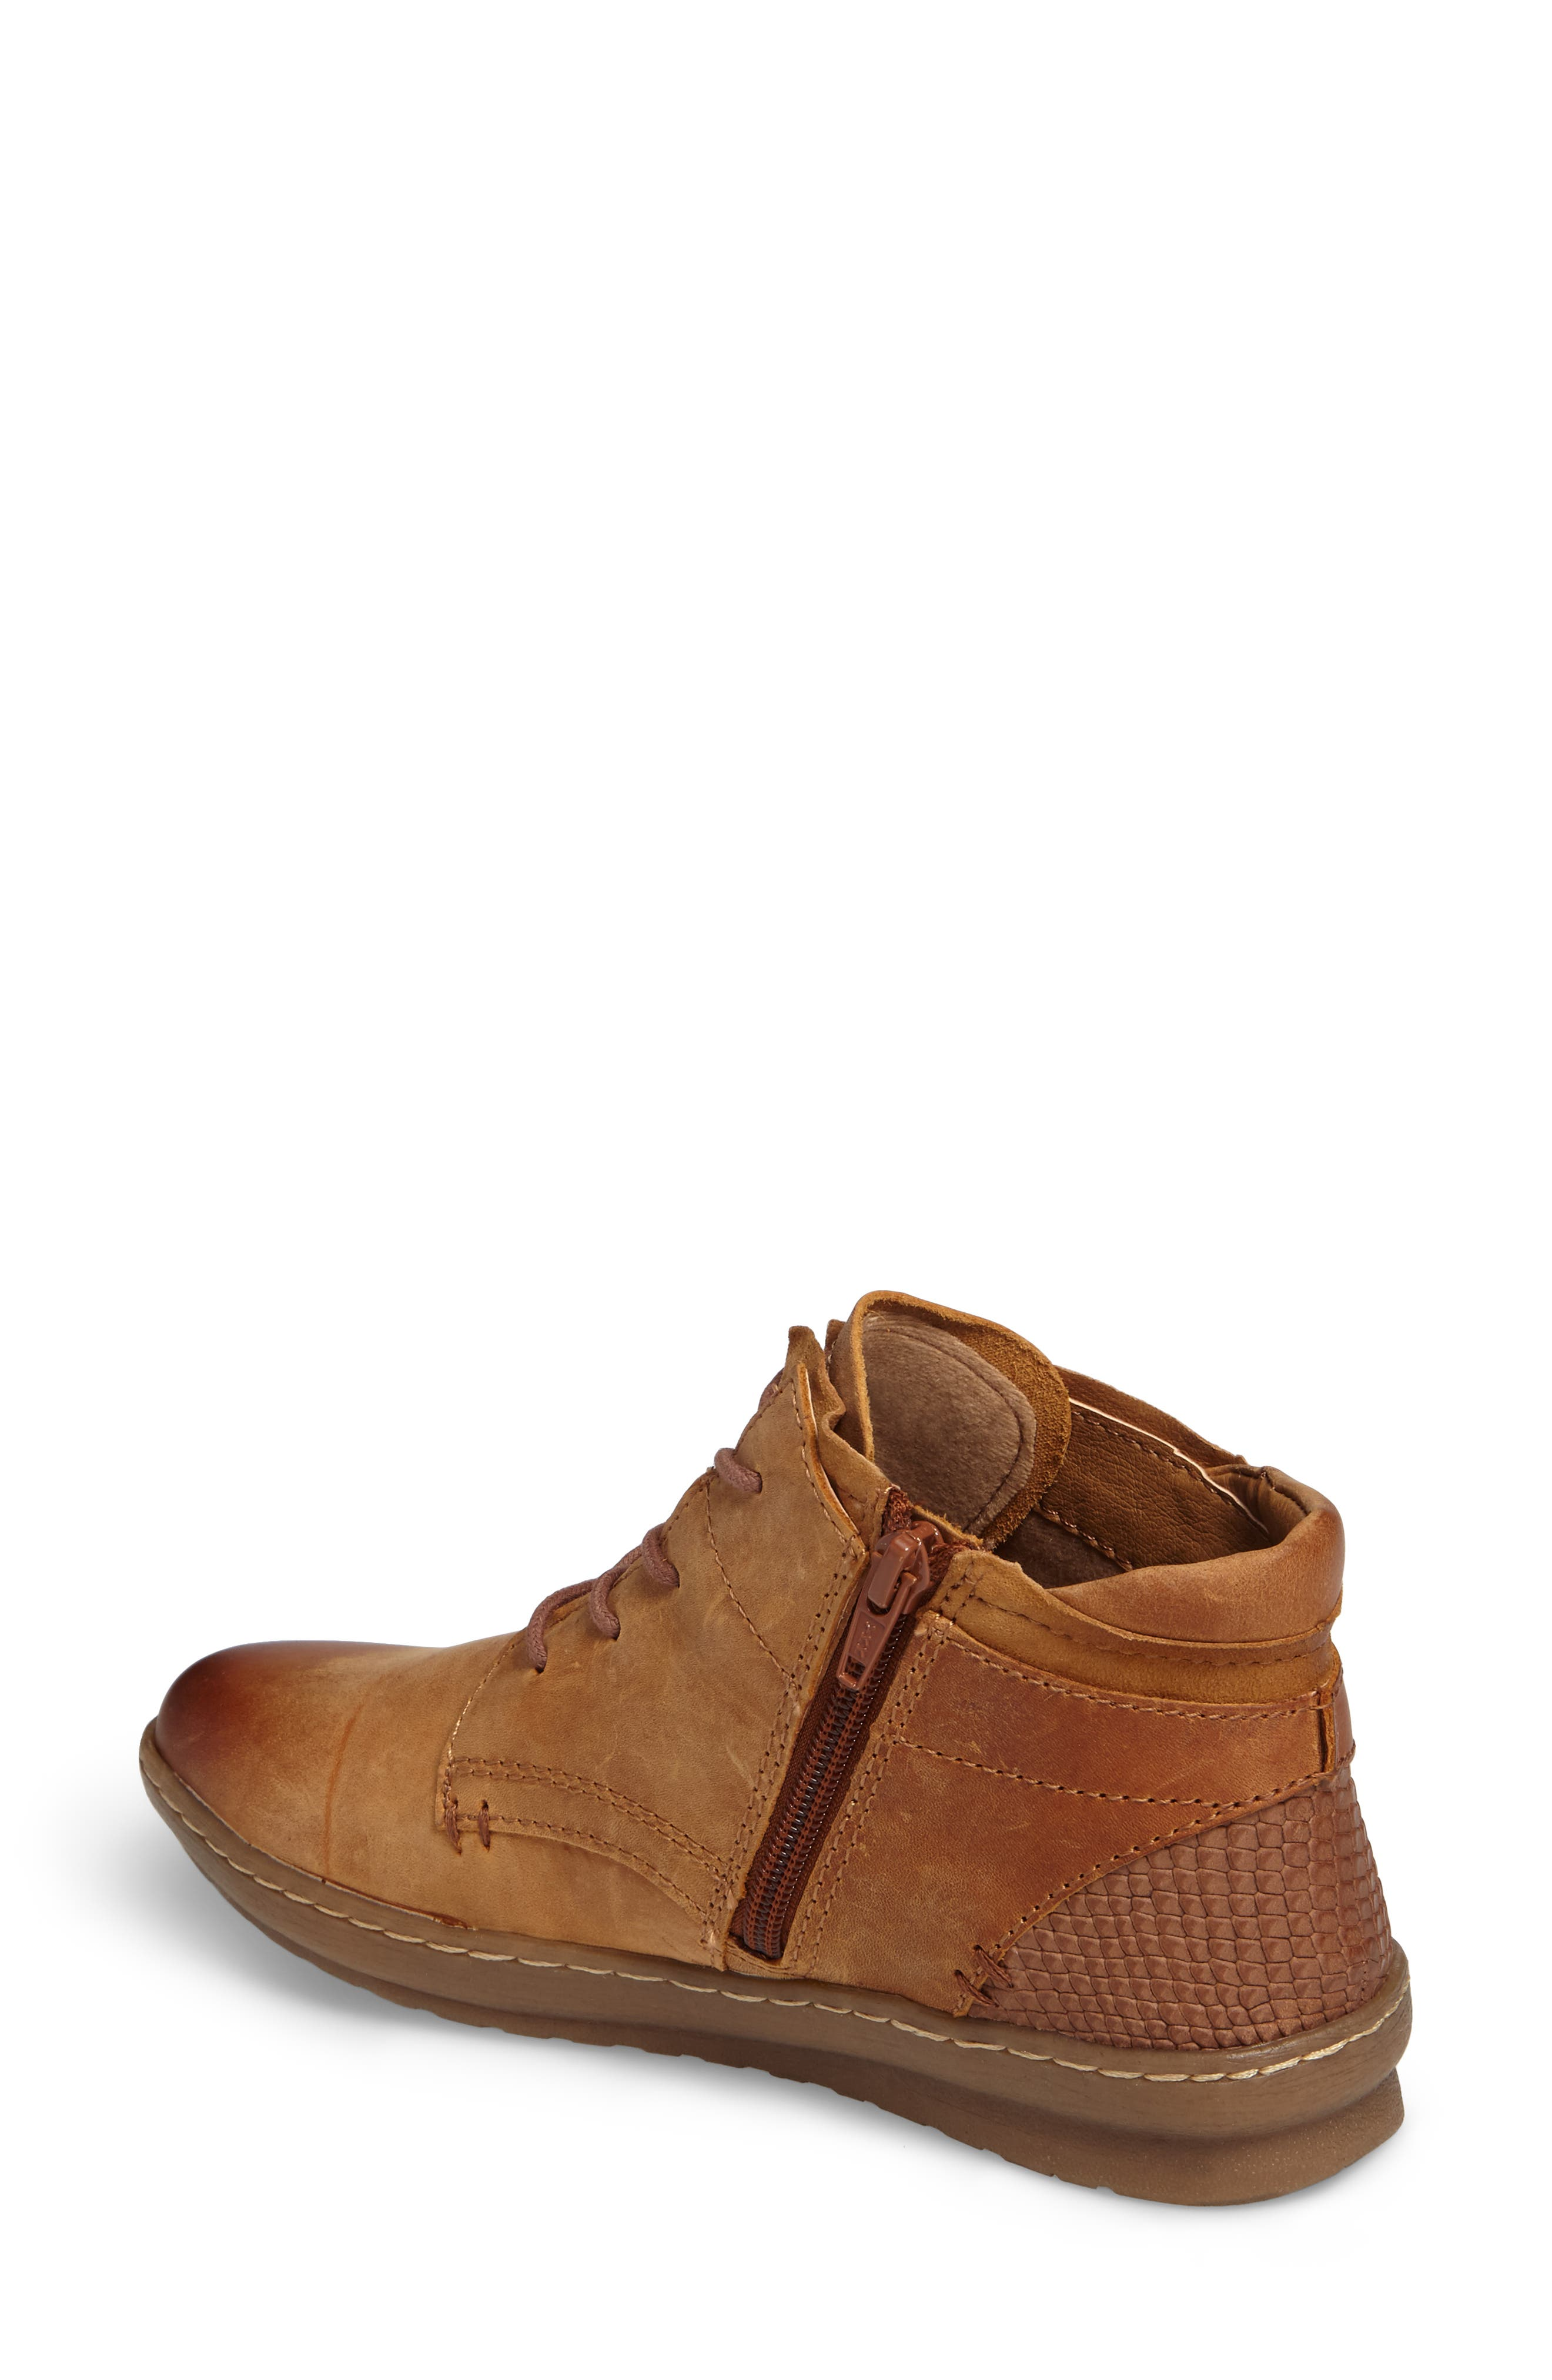 Cascade Boot,                             Alternate thumbnail 2, color,                             Almond Tan Leather